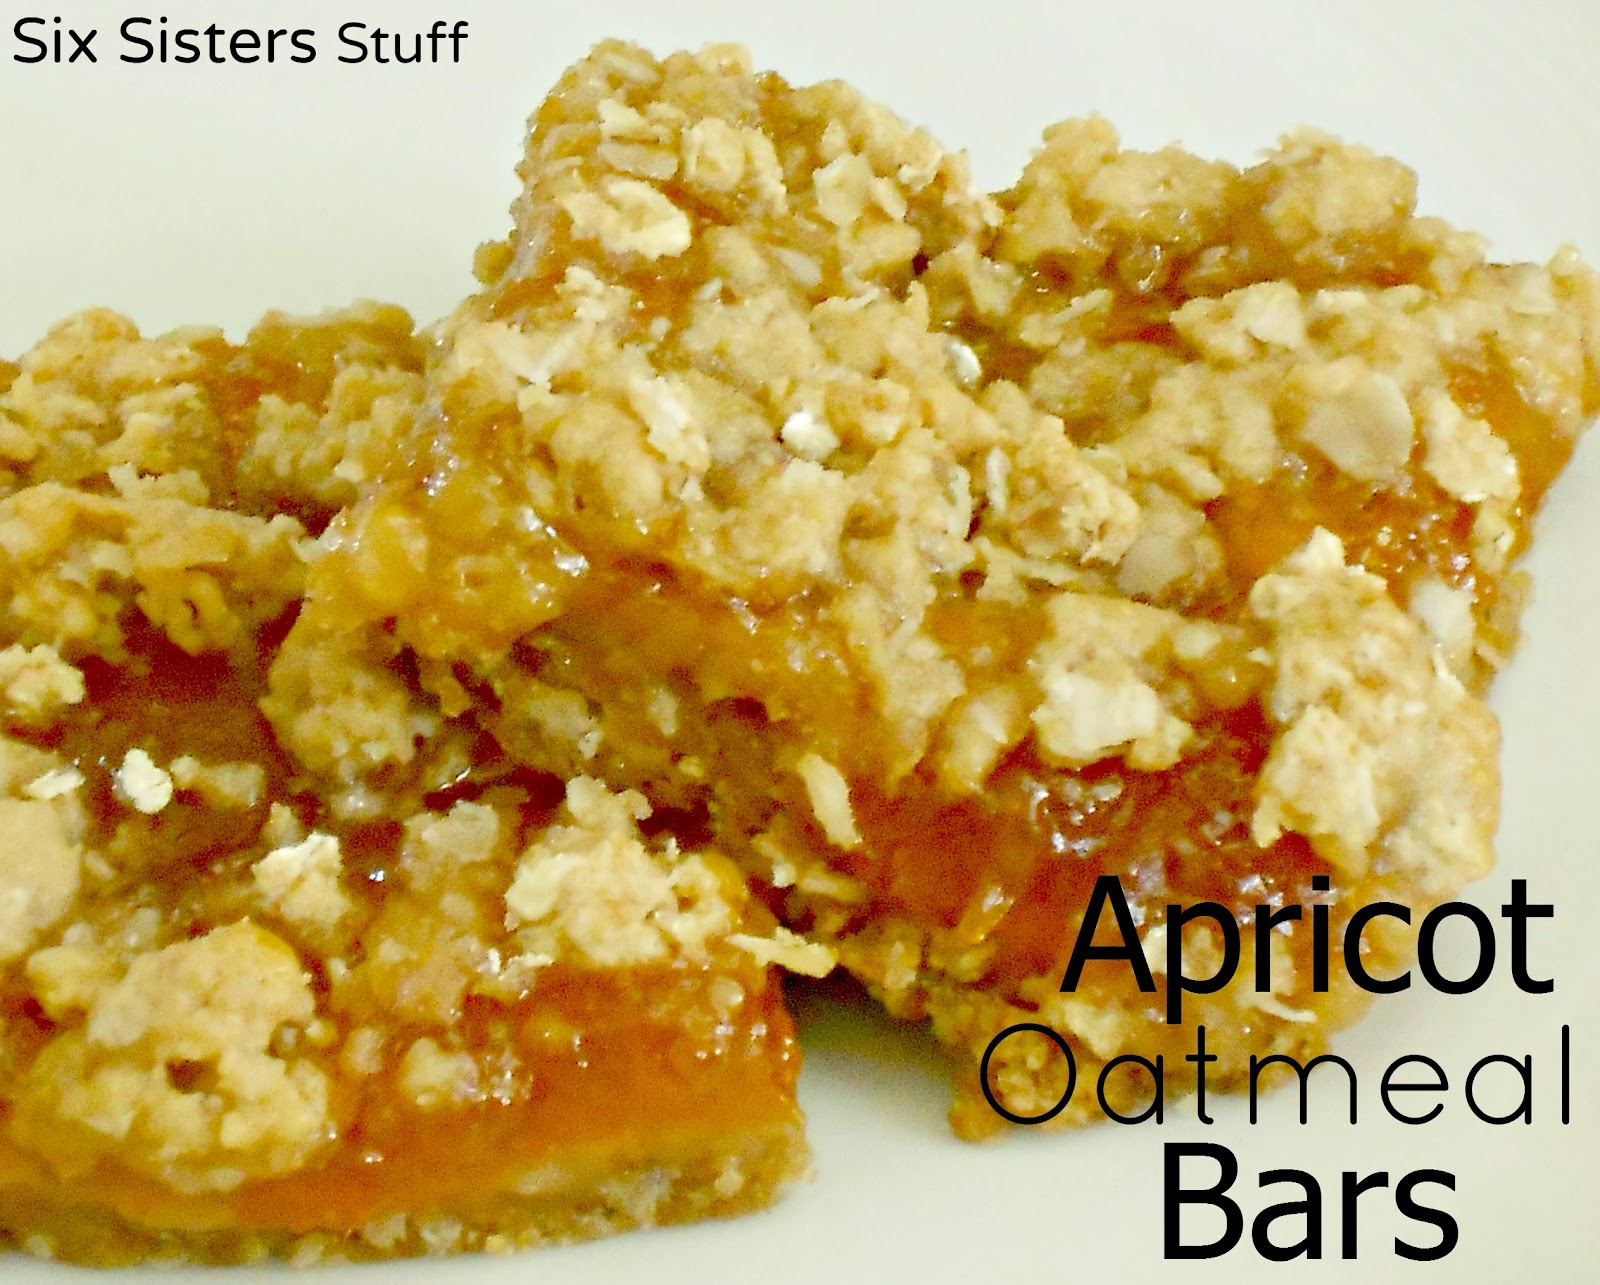 Healthy Meals Mondays: Apricot Oatmeal Bars | Six Sisters' Stuff